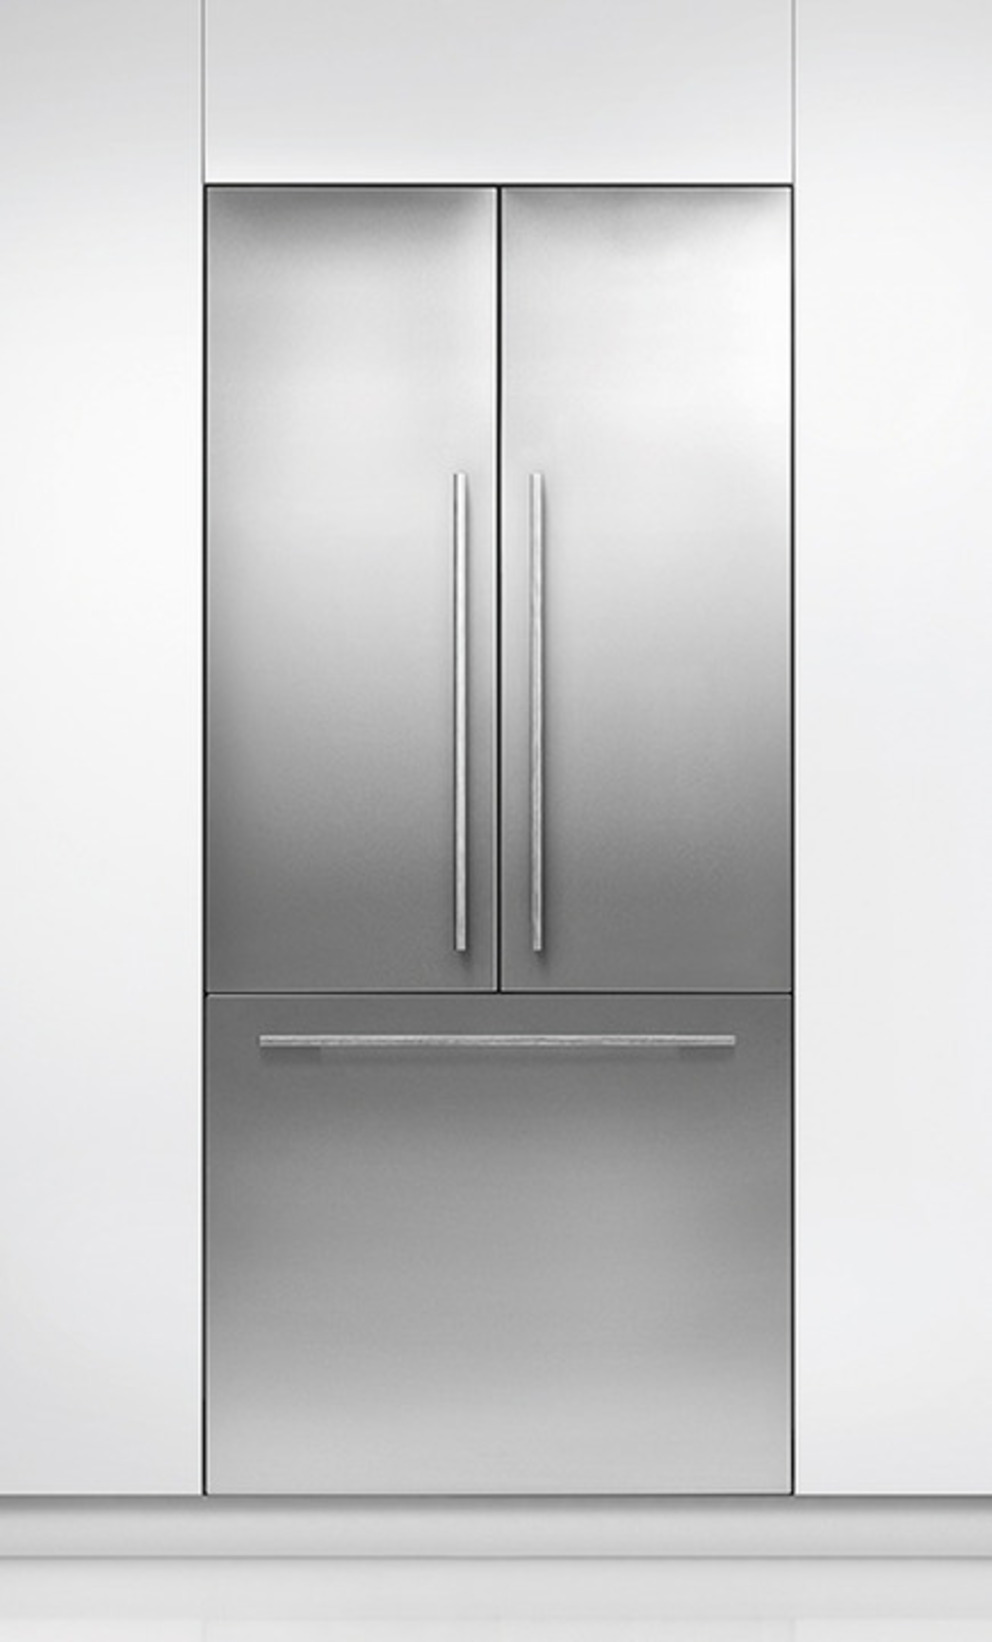 Fridges Fisher&Paykel RS36A80J1 + RD3684 (84'' F&P)